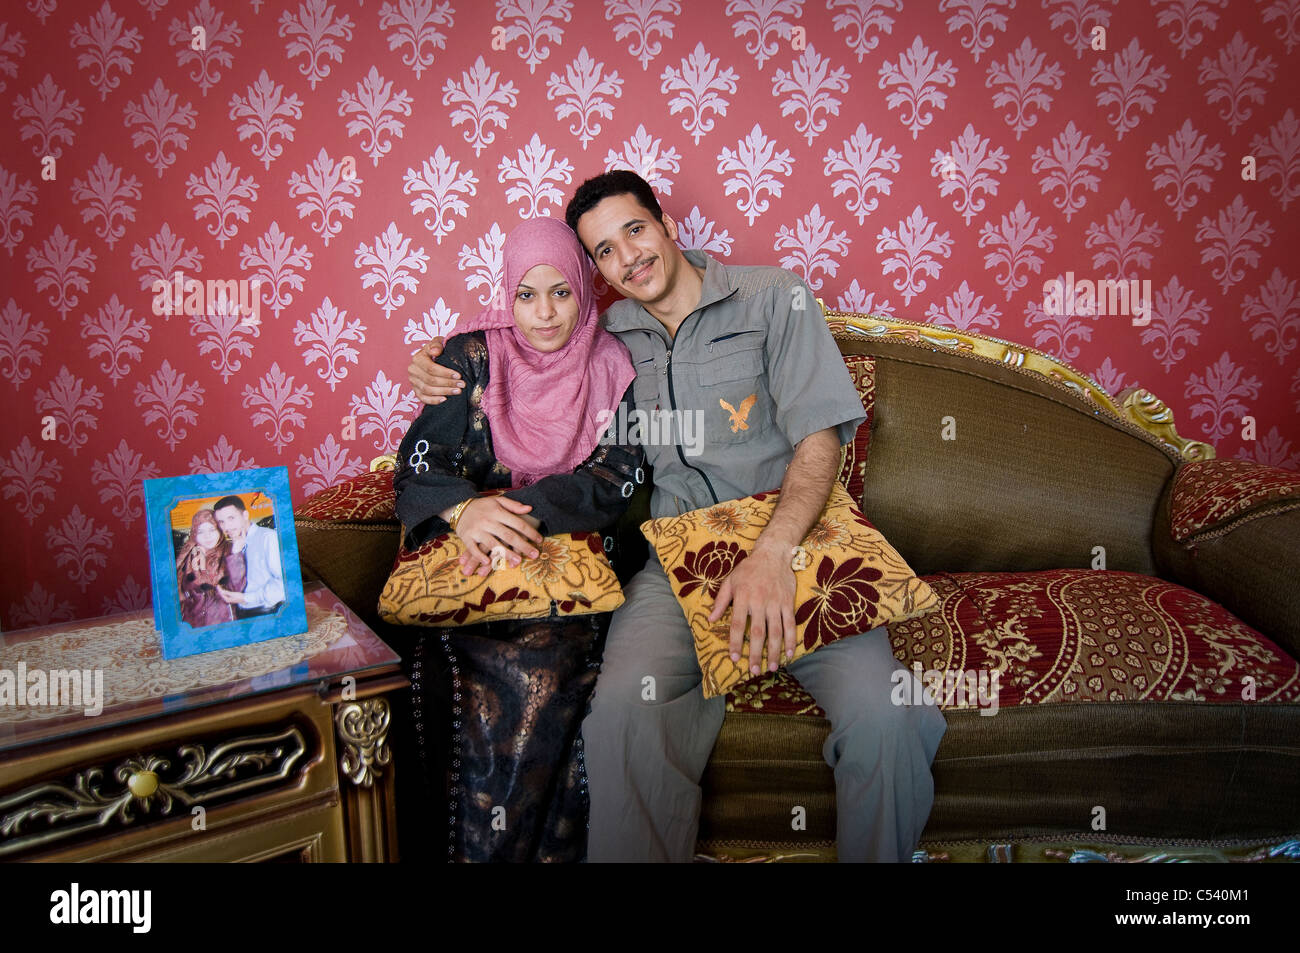 EGYPT FAYOUM Newly Wed Couple Mahmoud Abdel Baki And Fatma Soliman Mohamed In Gablaa Village She Is Only 16